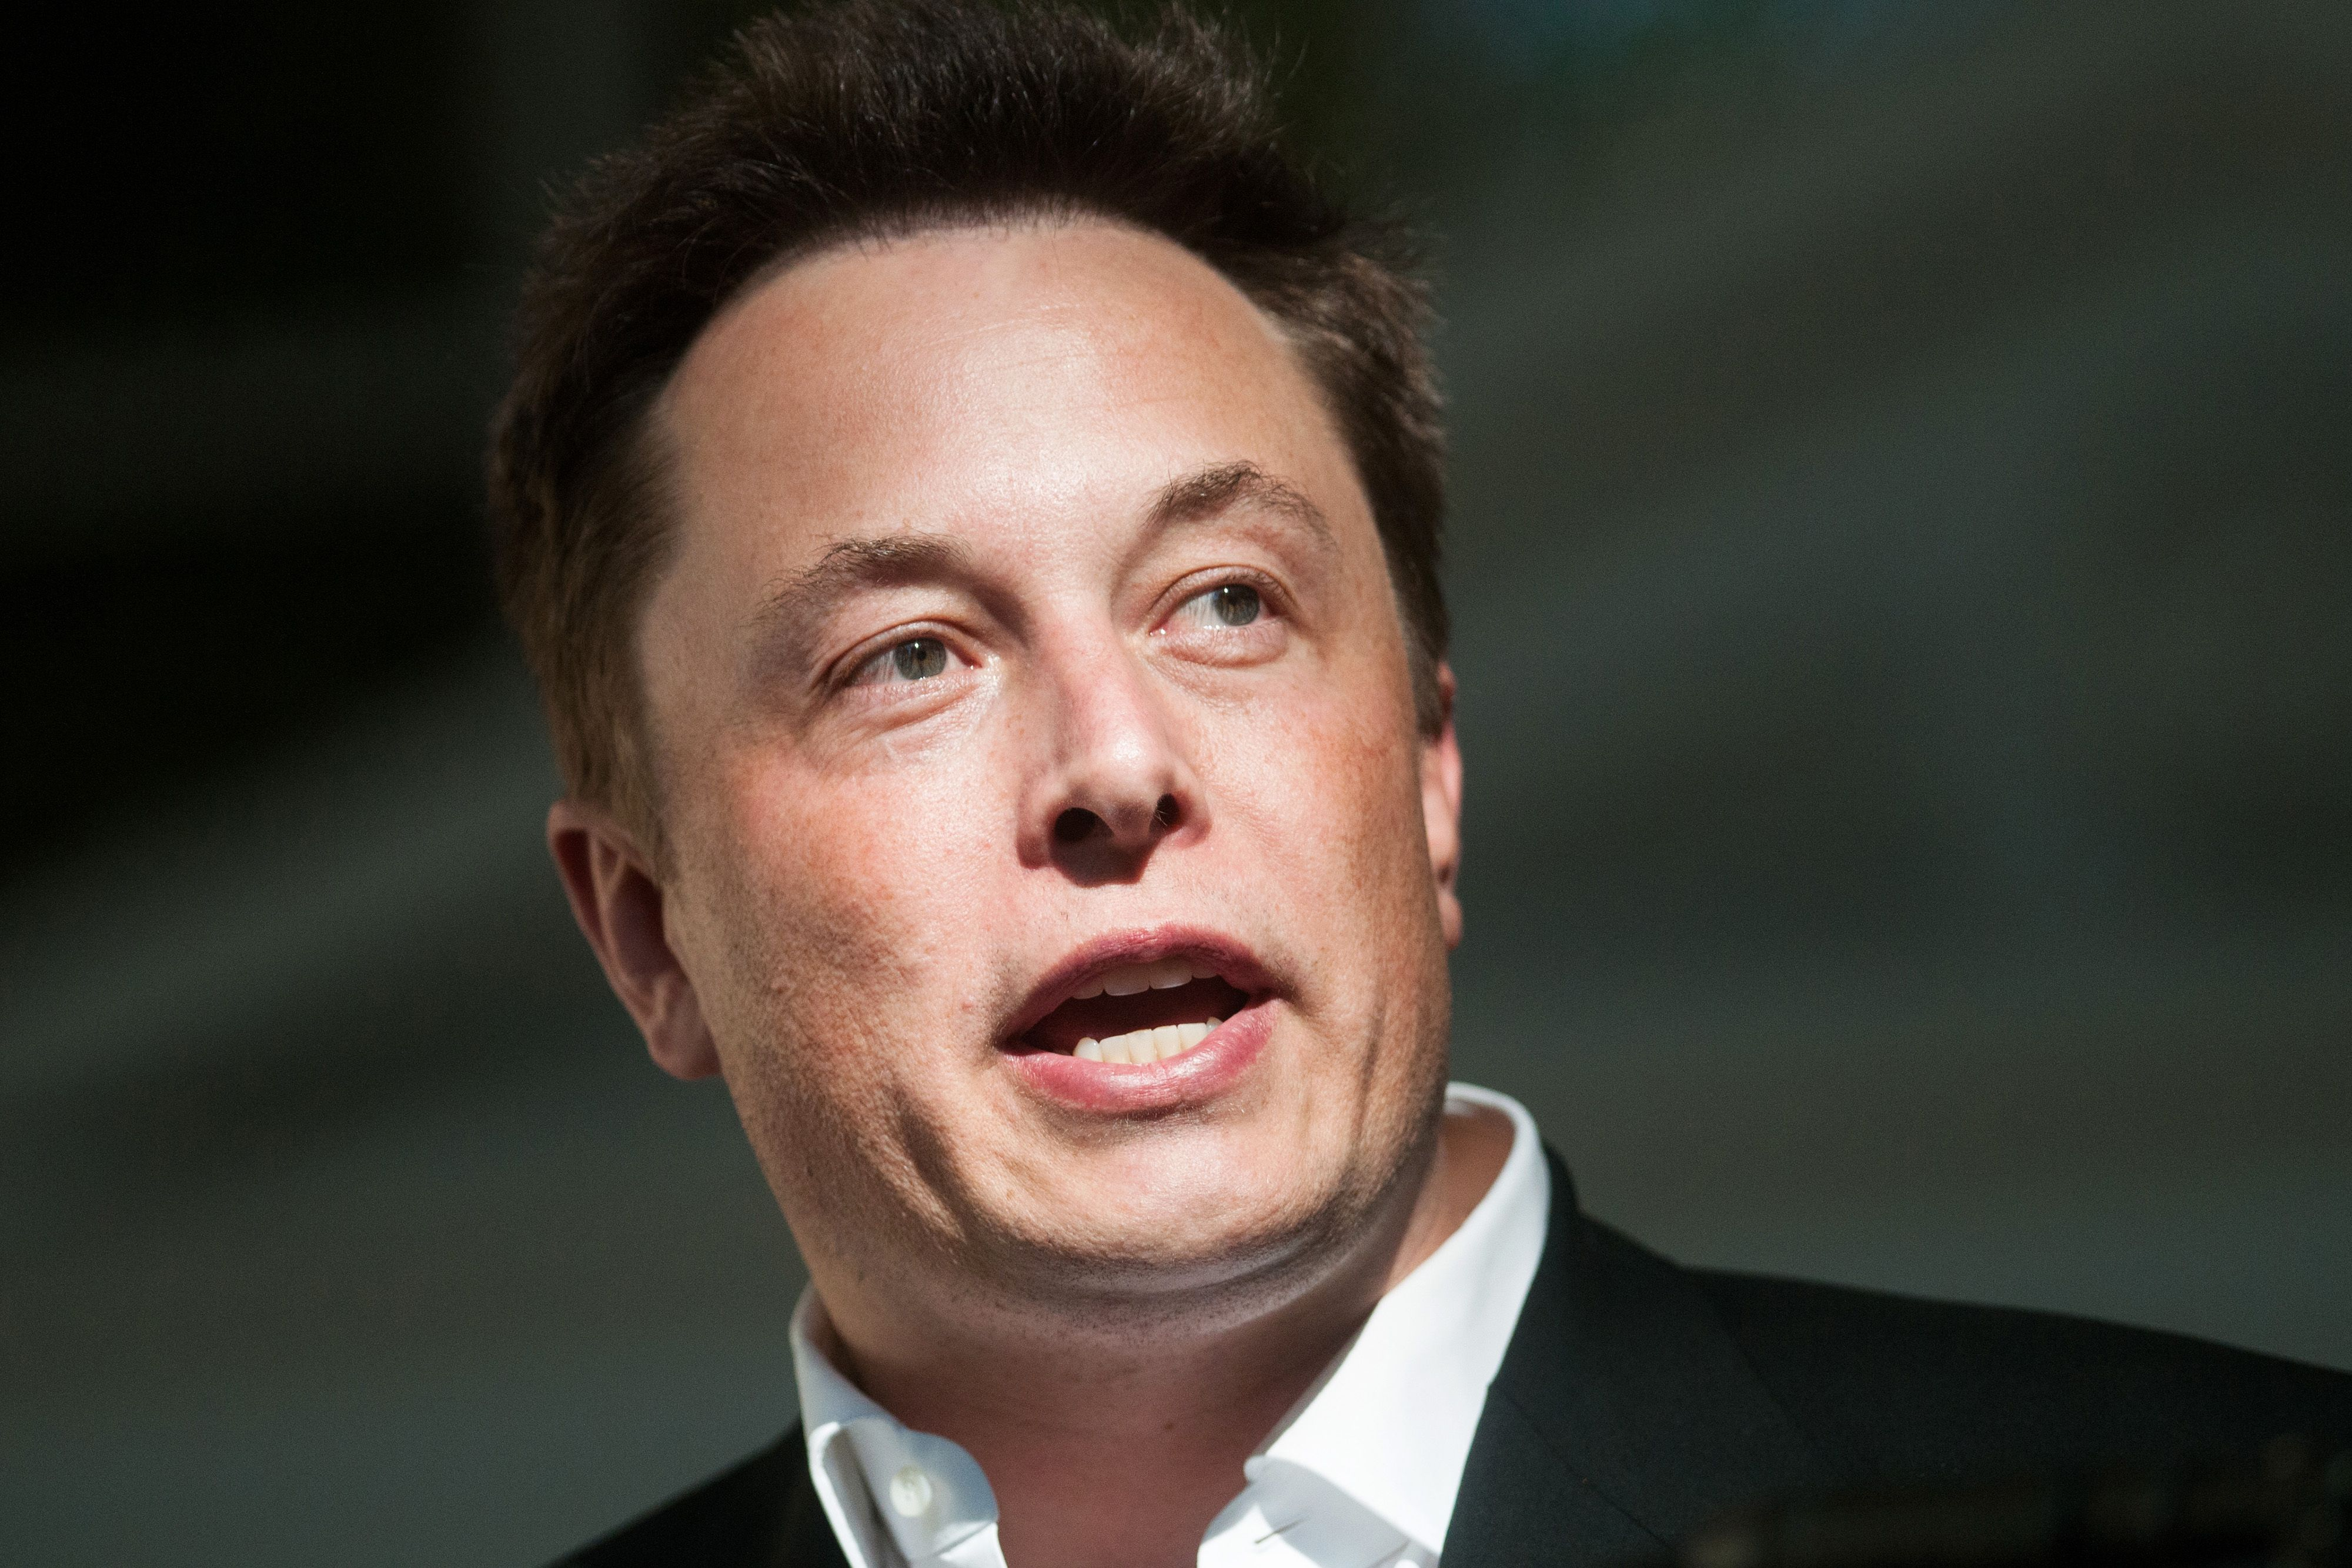 Elon Musk The CEO and CTO of Space X has a Bachelor of